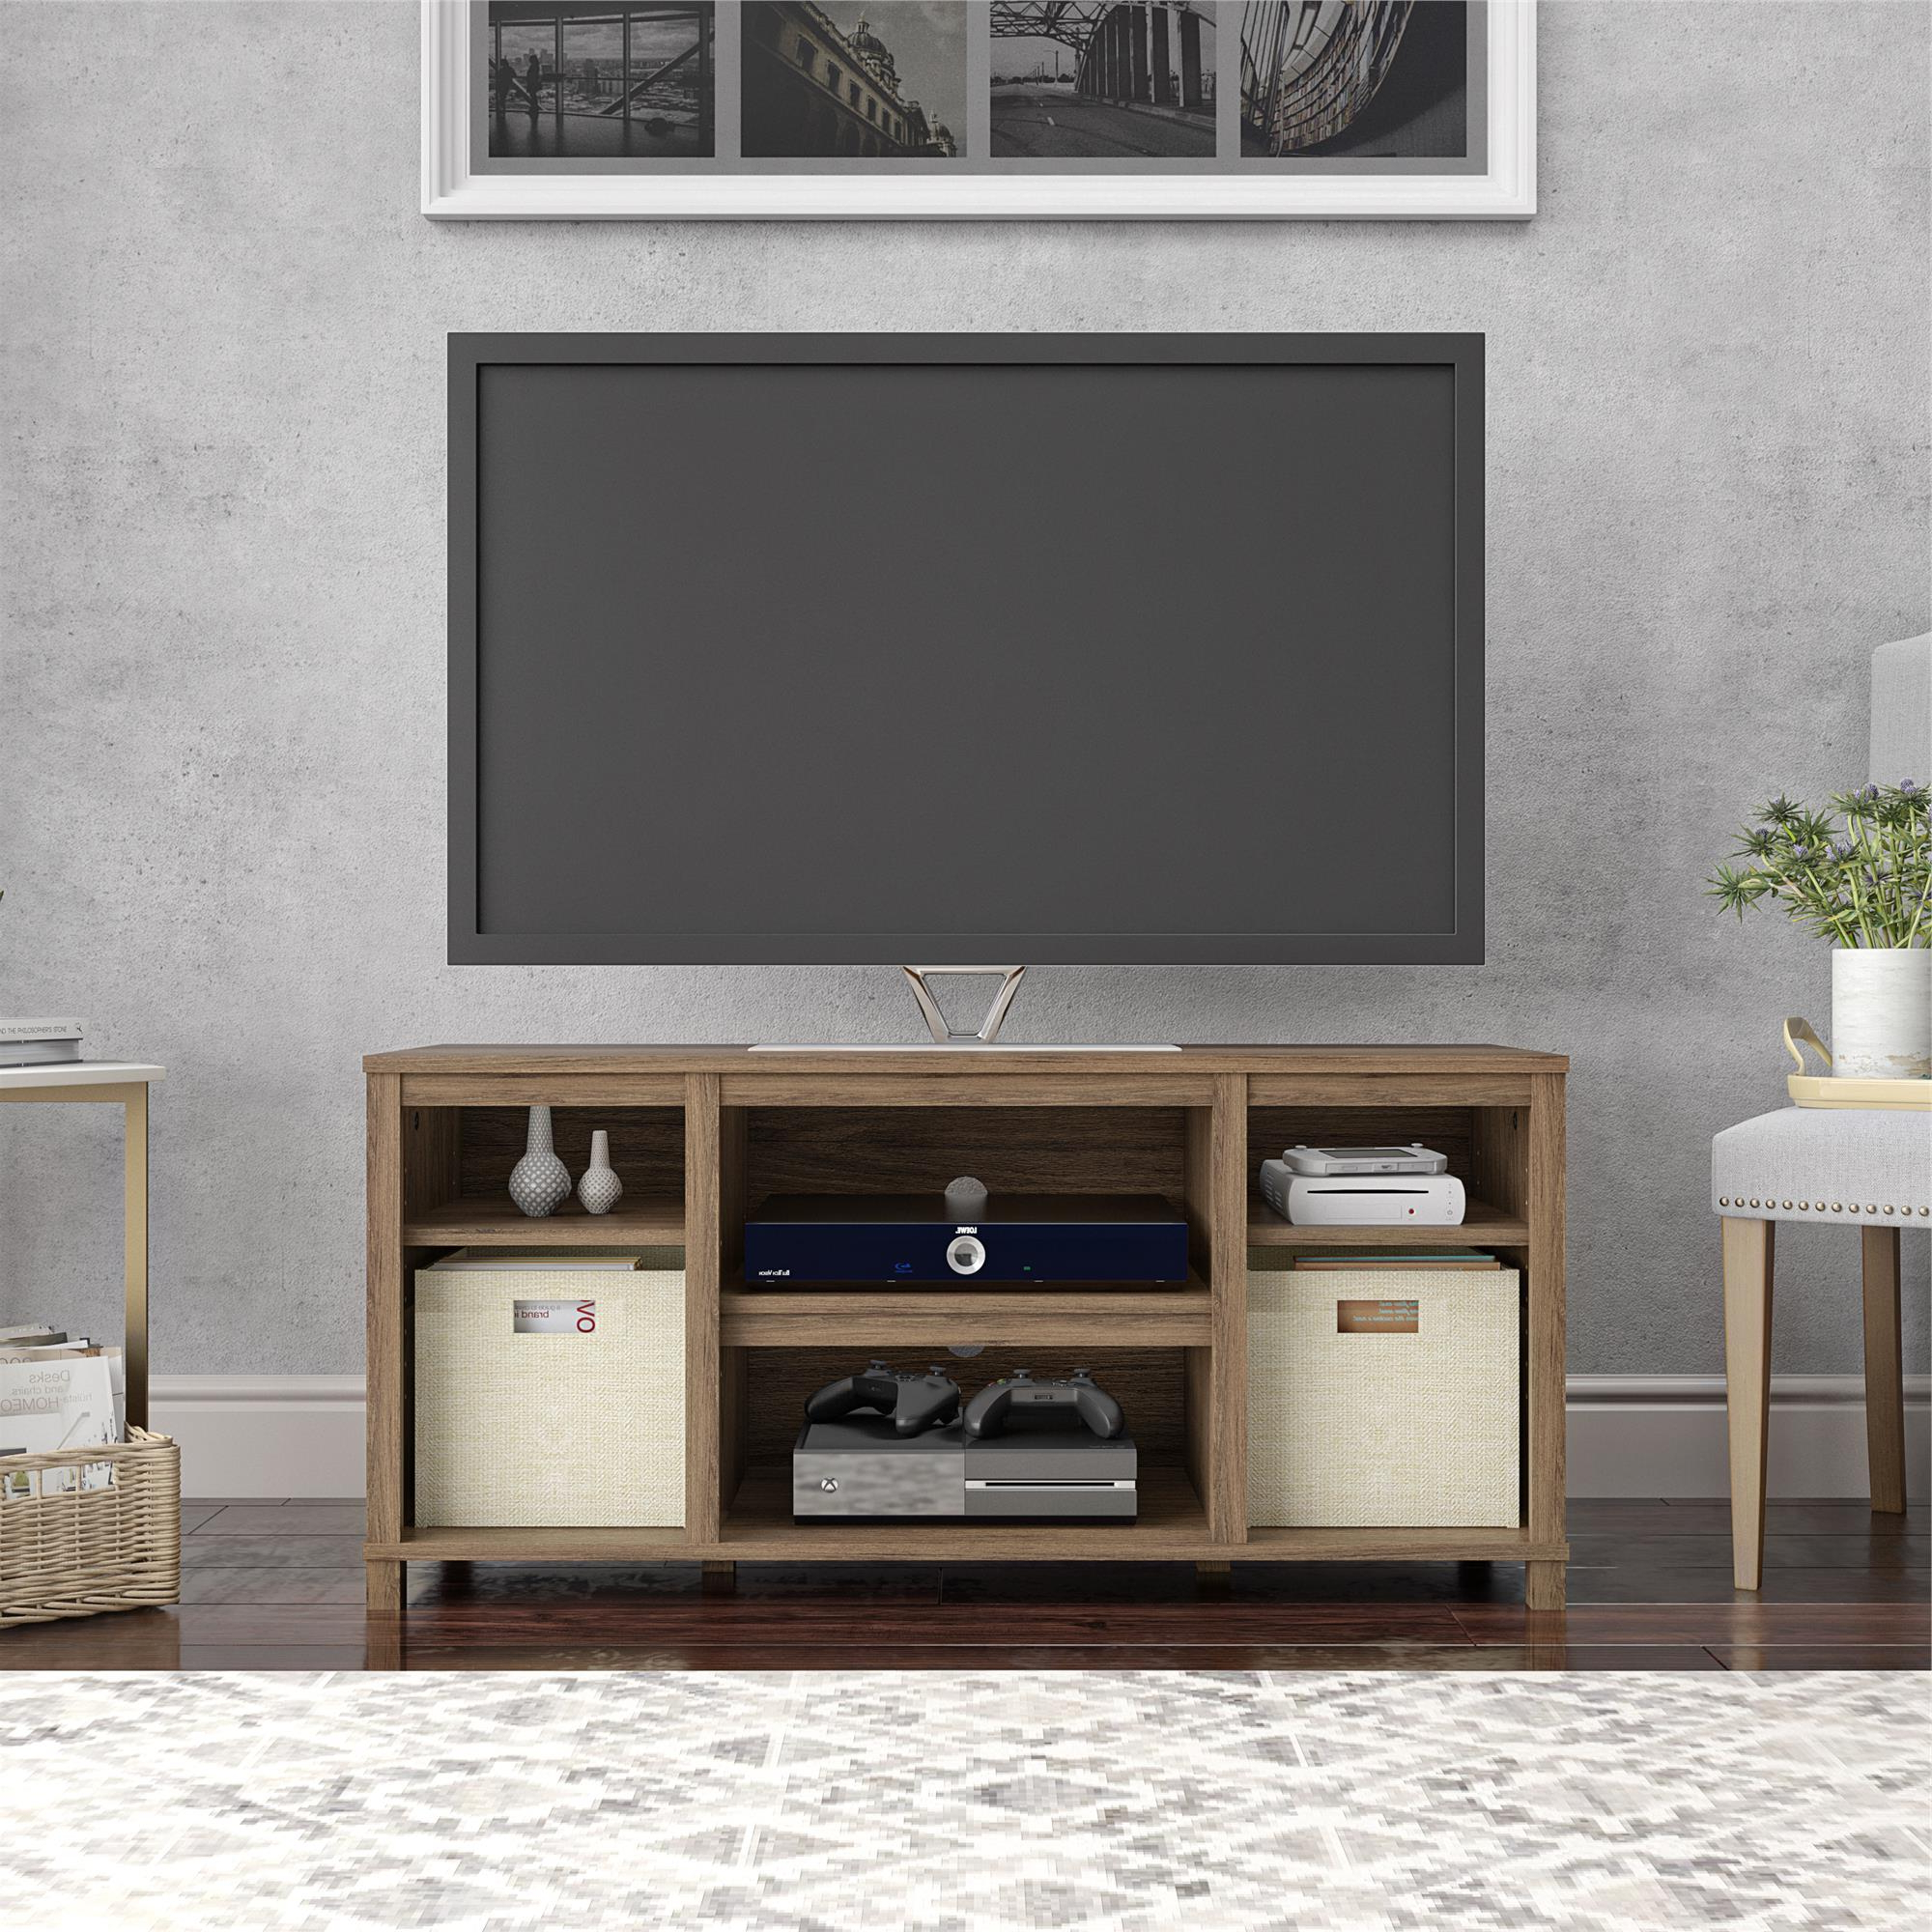 """Most Recently Released Lansing Tv Stands For Tvs Up To 50"""" Throughout Mainstays Parsons Cubby Tv Stand For Tvs Up To 50"""", Rustic (View 3 of 25)"""